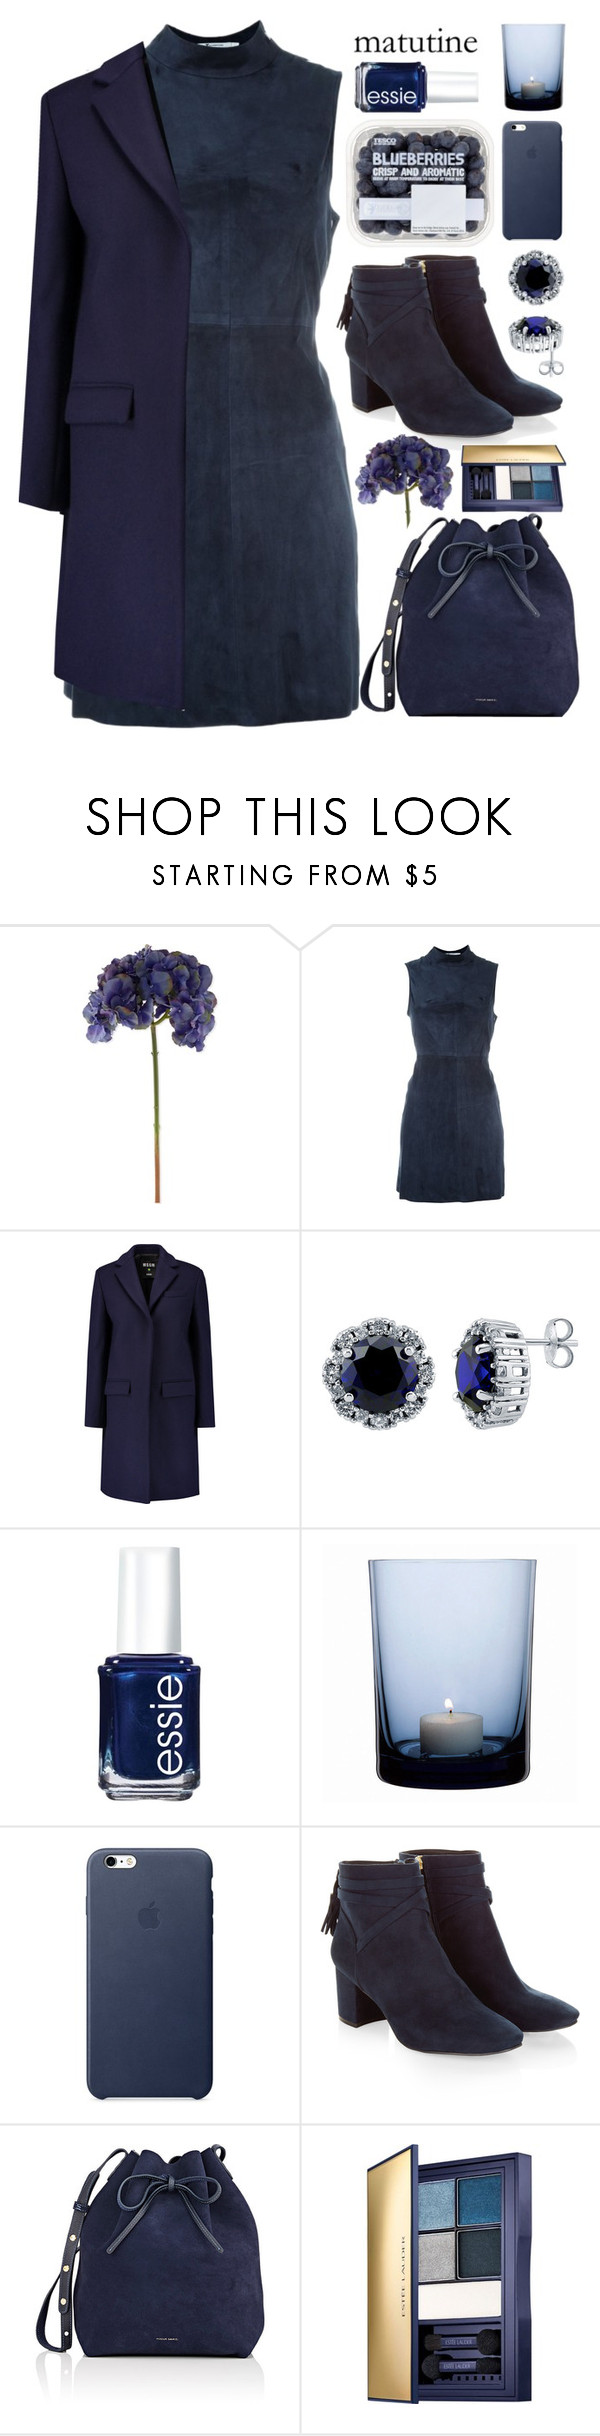 """""""Matutine, from head to toe"""" by jaeim ❤ liked on Polyvore featuring Sia, T By Alexander Wang, MSGM, BERRICLE, Essie, By Nord, Monsoon, Mansur Gavriel, Estée Lauder and monochrome"""